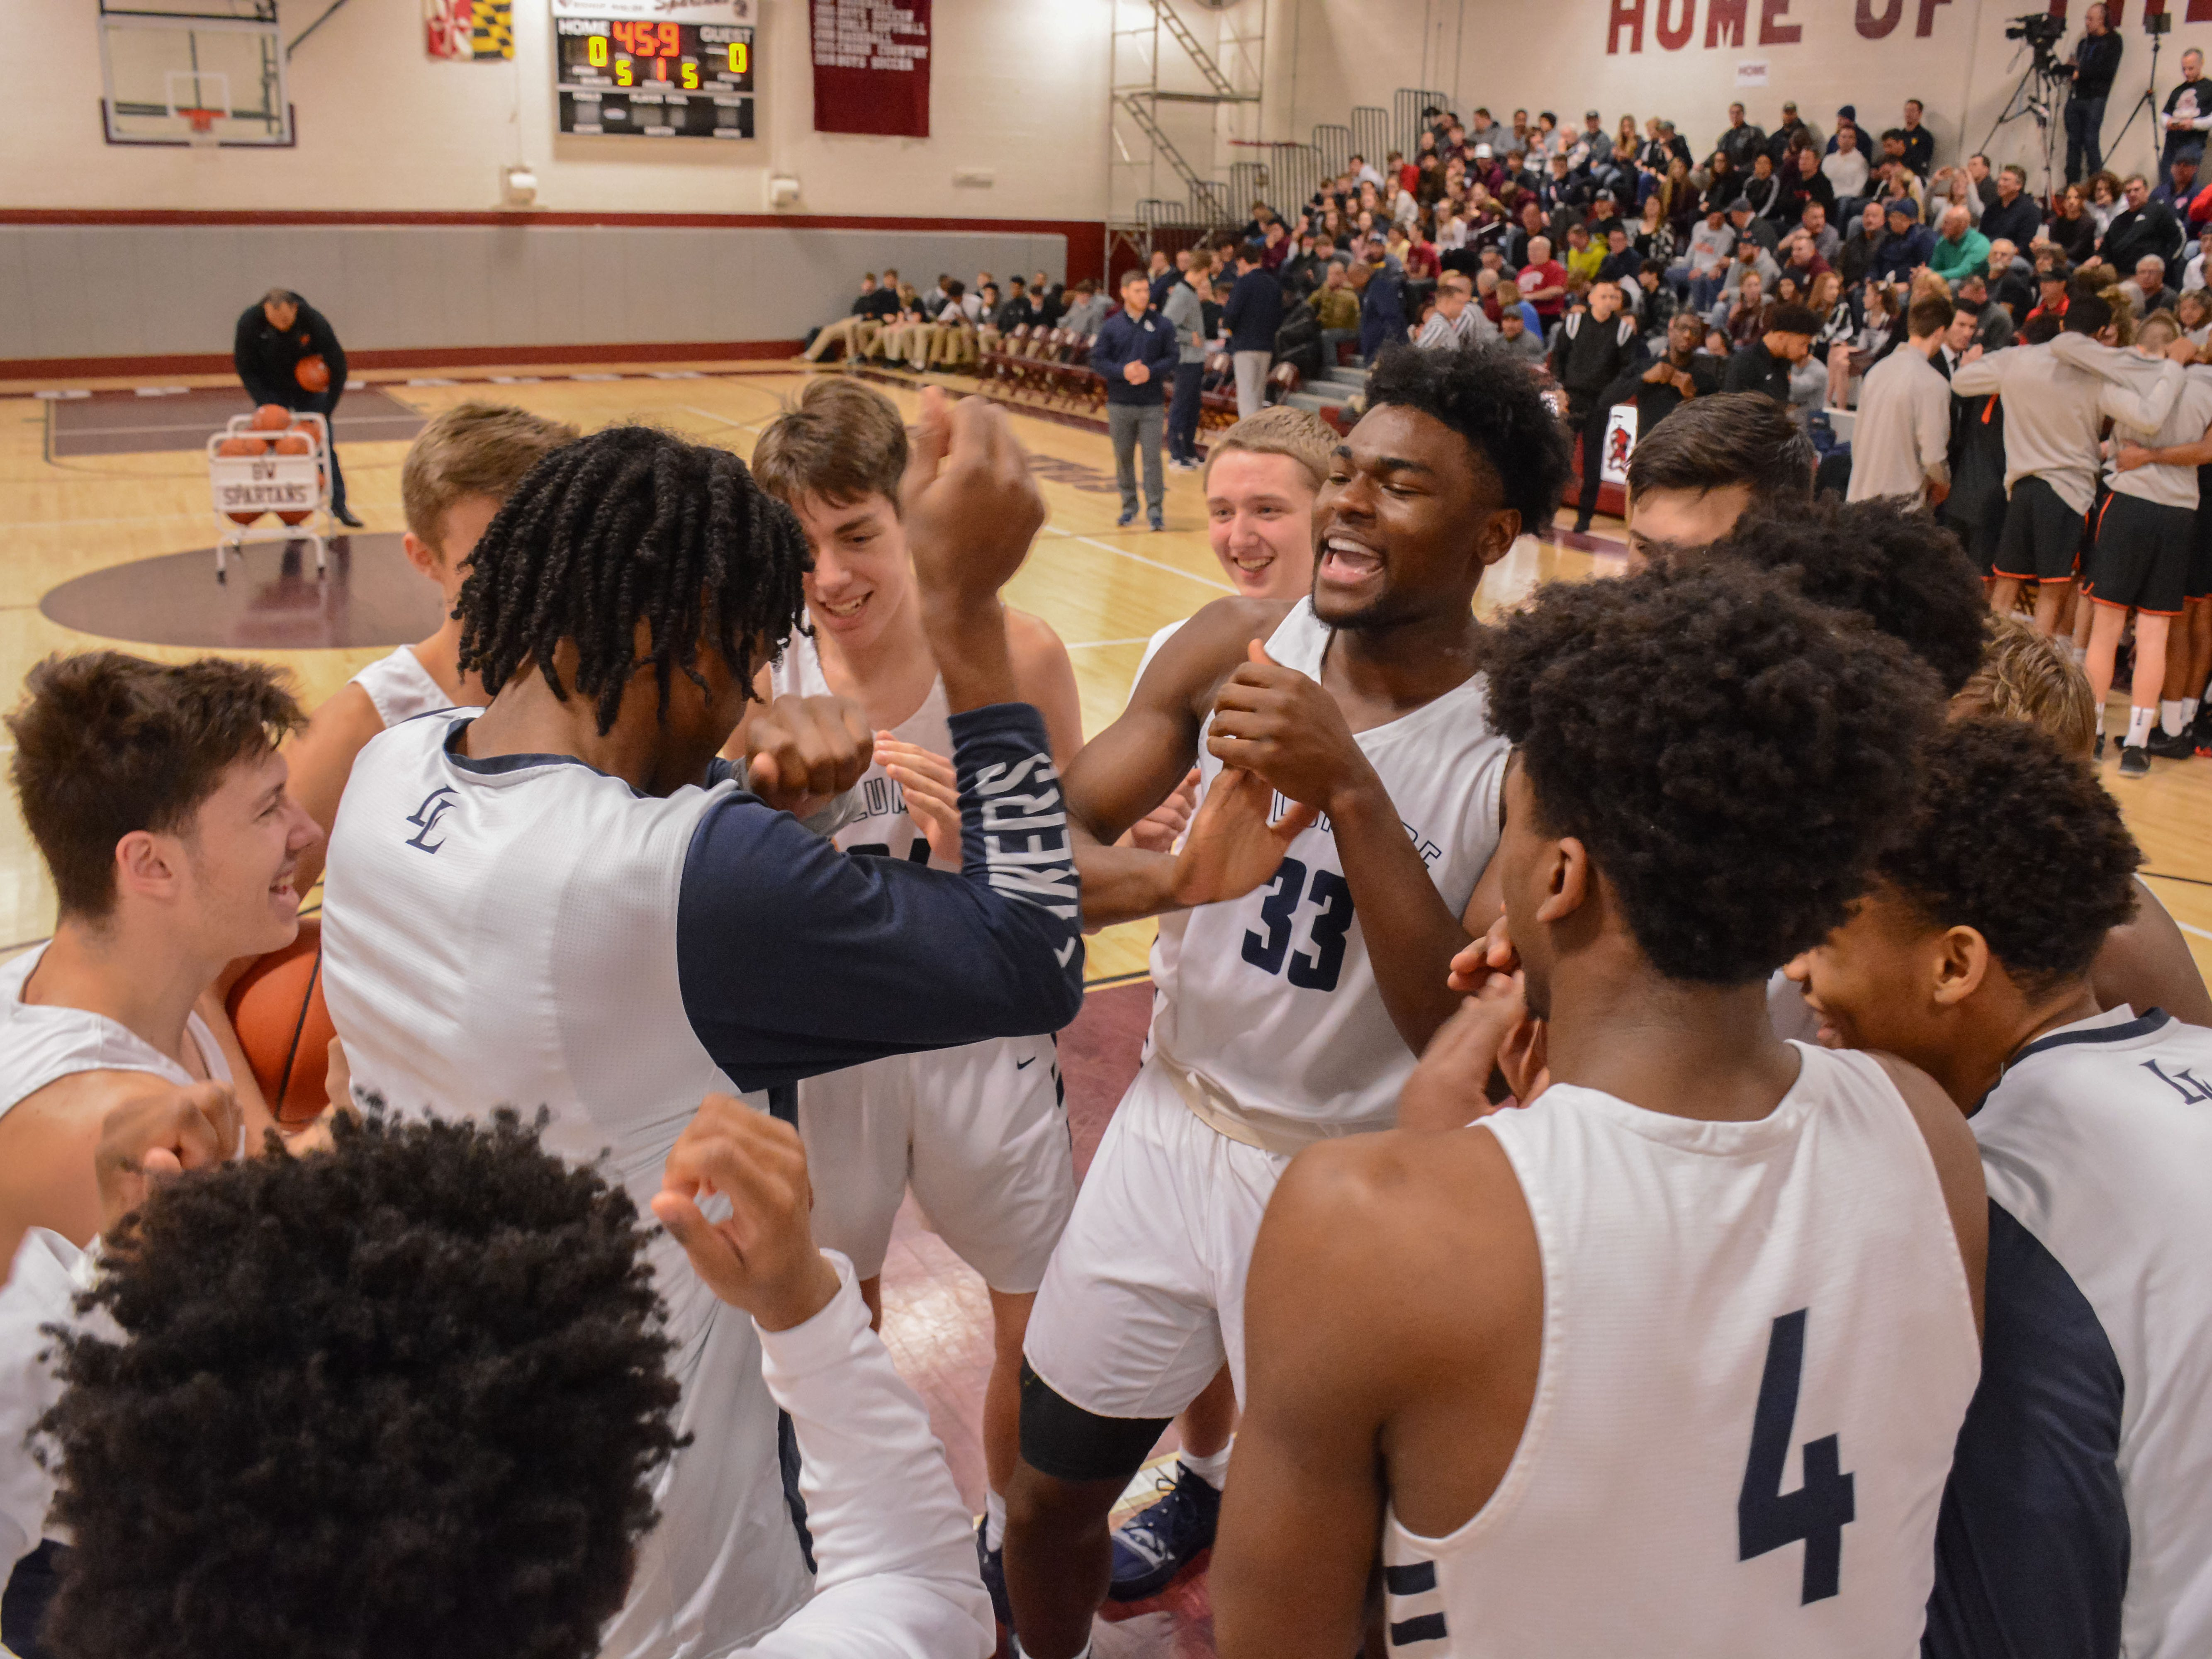 Former McQuaid star Isaiah Stewart (33) gets fired up with his La Lumiere teammates prior to a game against Wasatch Academy of Utah at the Bob Kirk Invitational in Cumberland, Maryland.